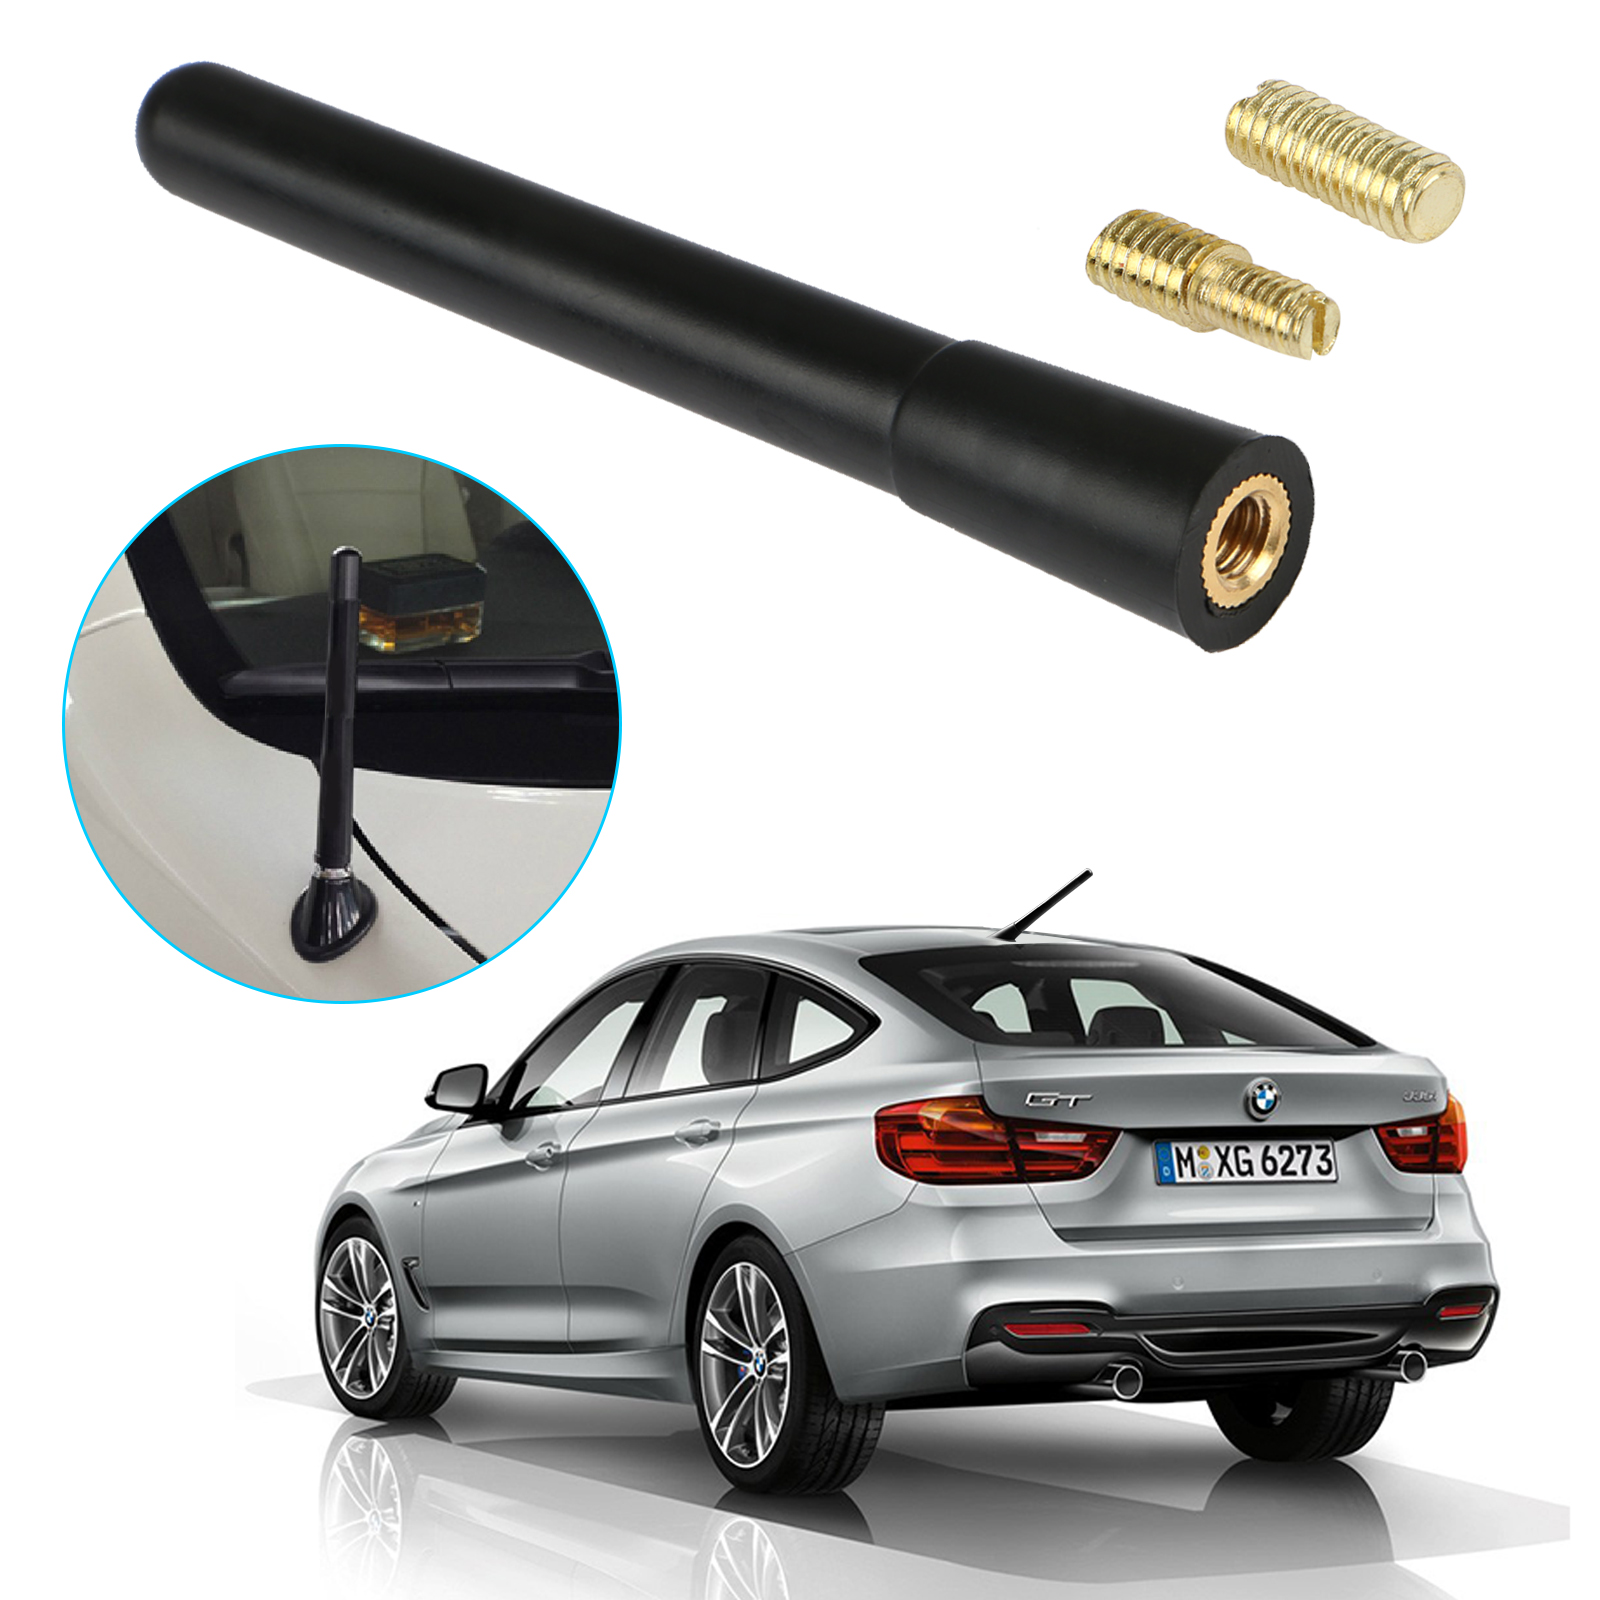 "3.7"" Universal Car Auto Short Vehicle AM/FM Radio Antenna Stubby Aerial Replacement"